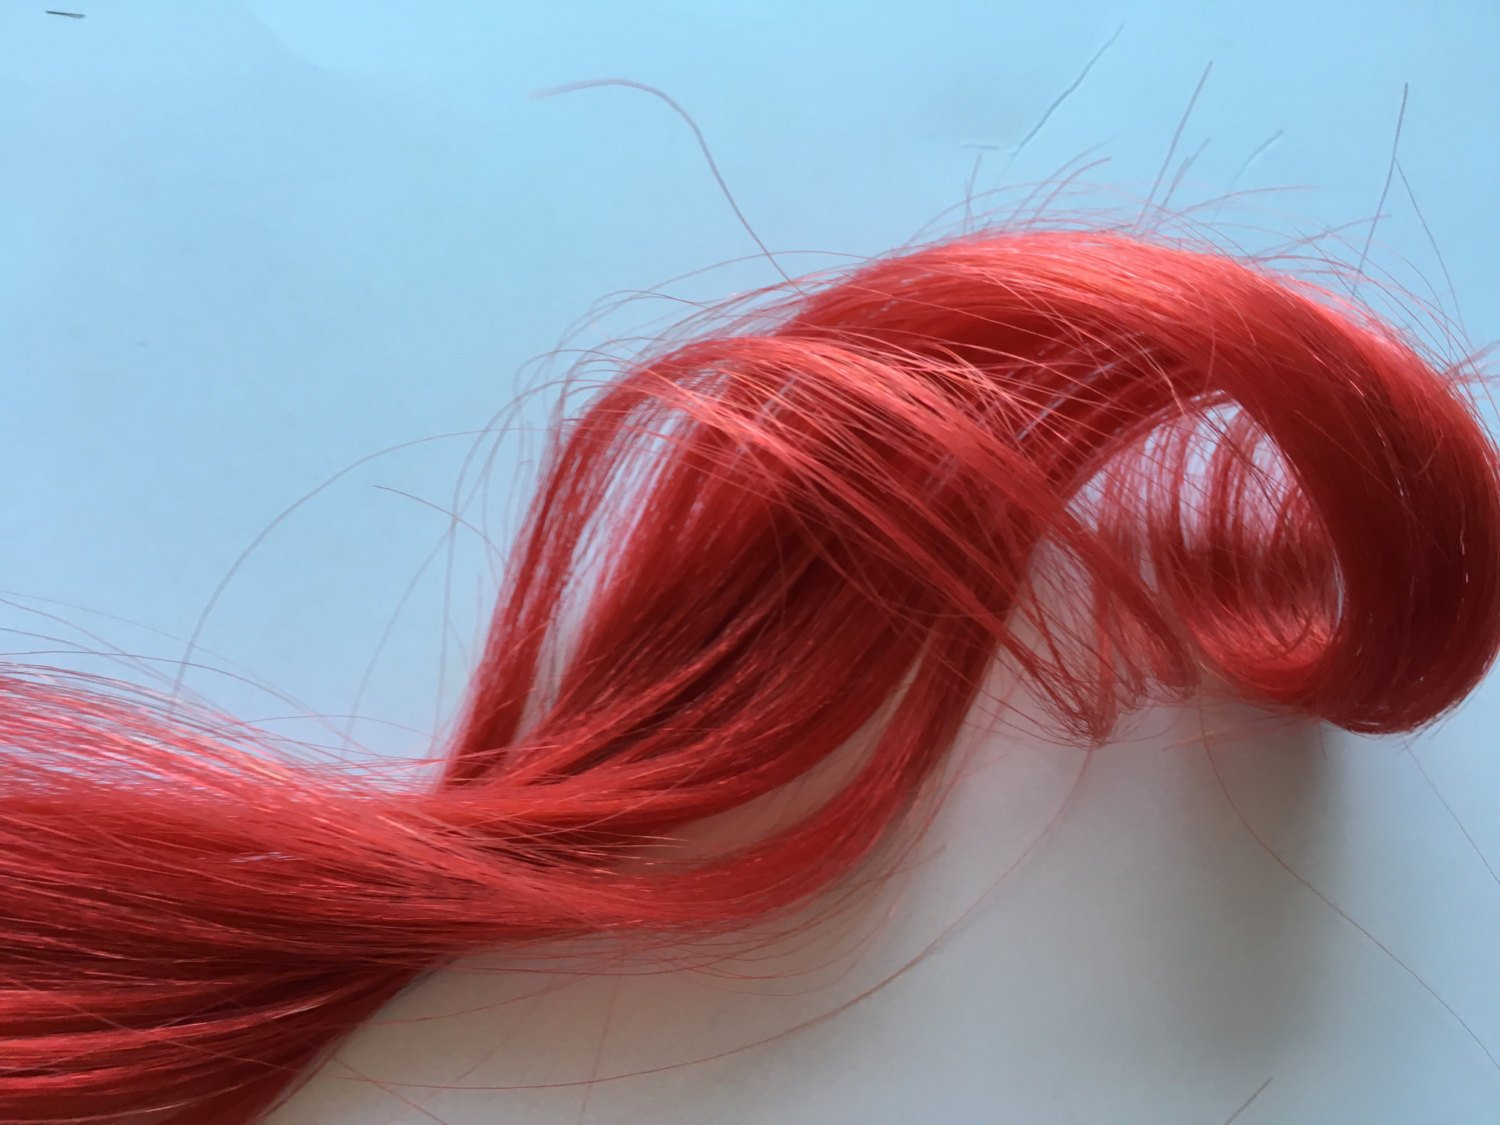 16-18 inch 100% Human Hair Extensions Bright Red Clip in or Tape style